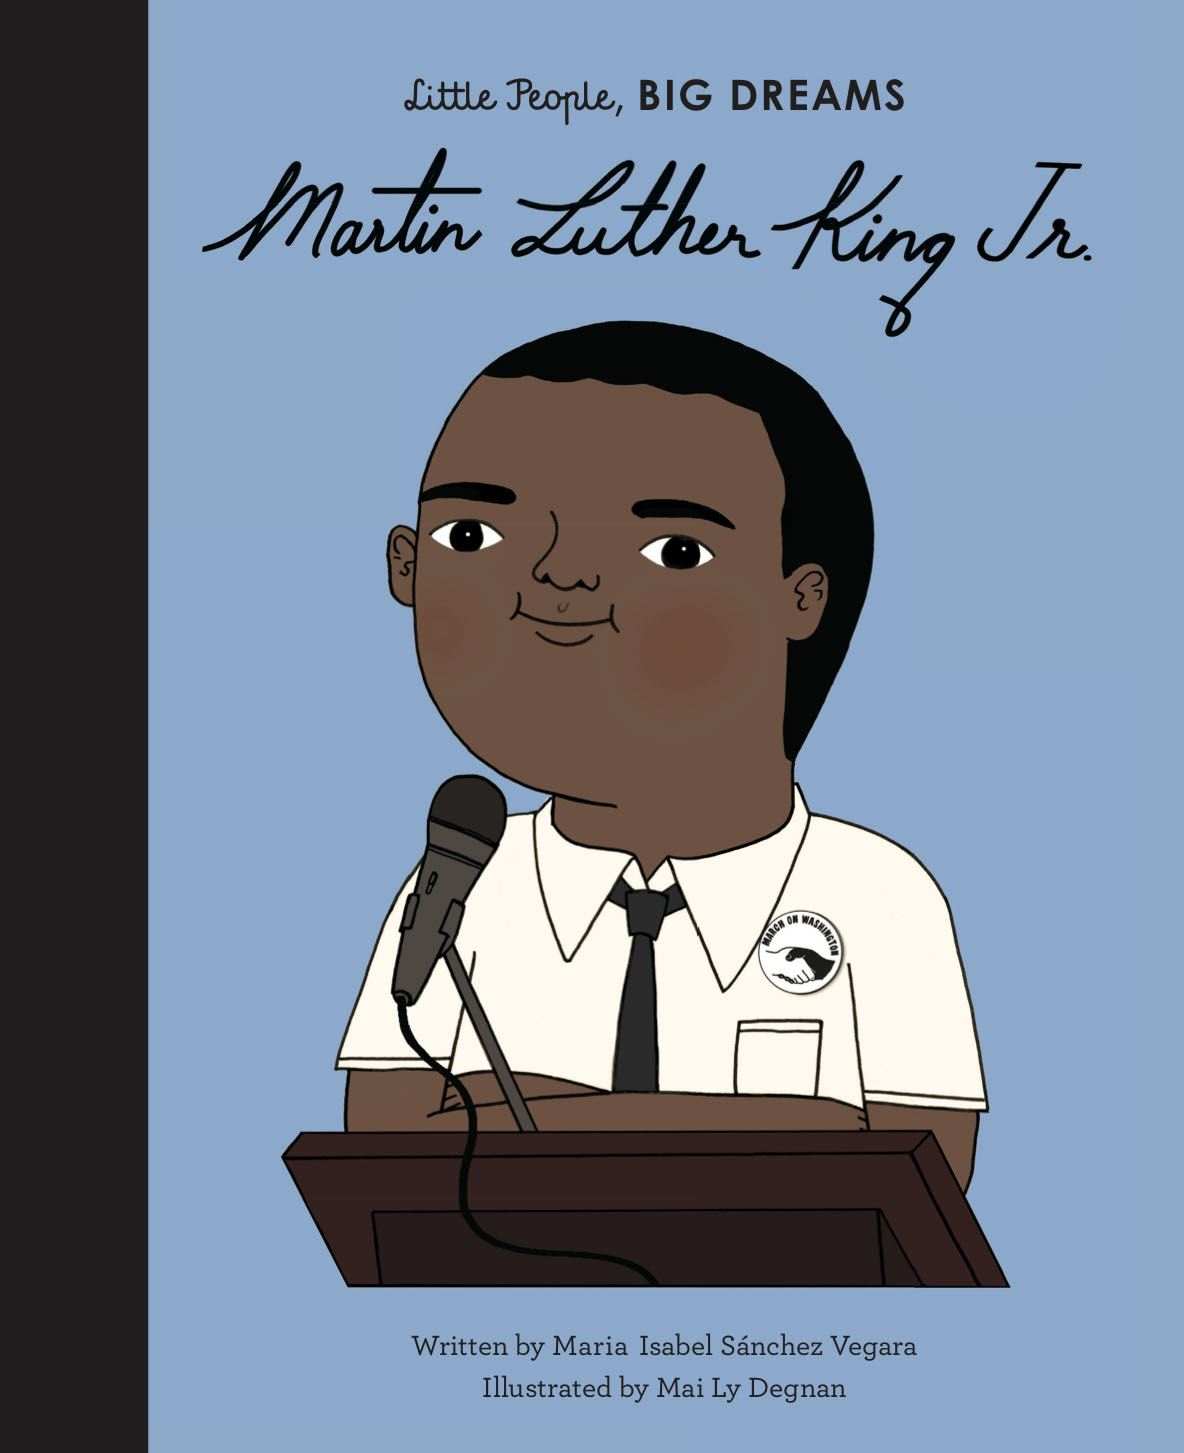 Little People, Big Dreams: Martin Luther King Jr.